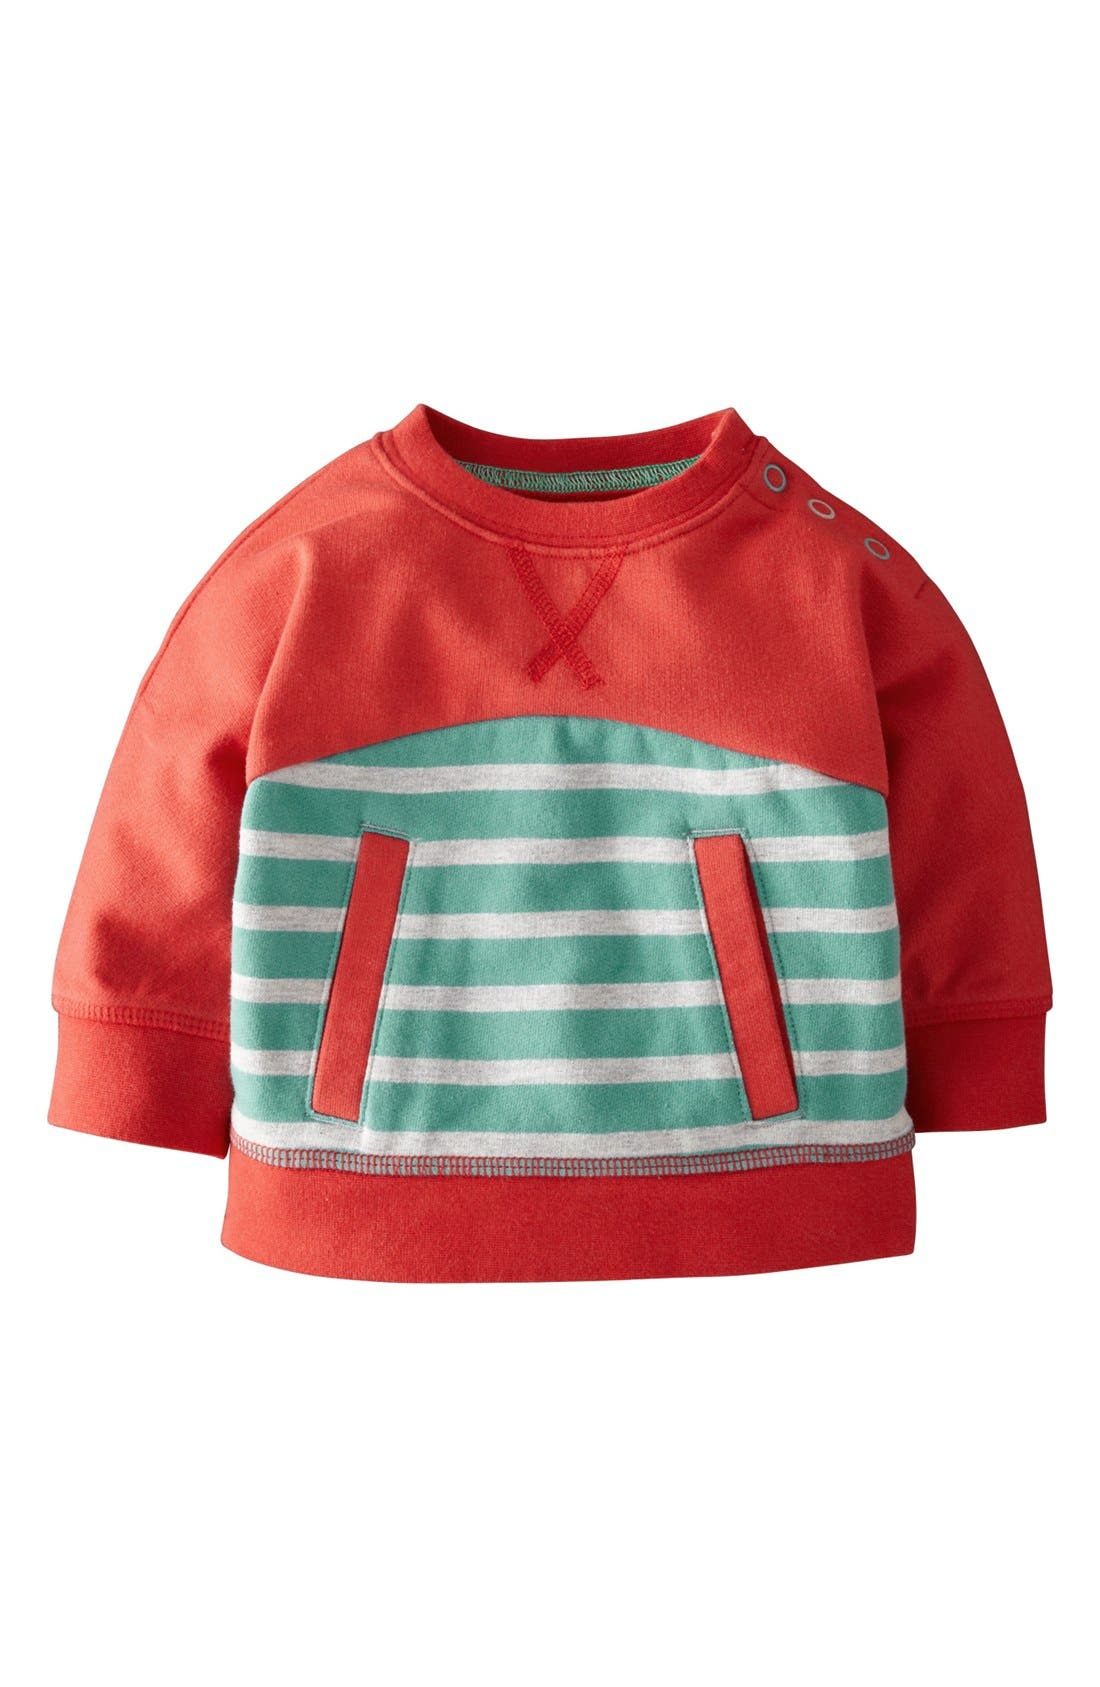 Main Image - Mini Boden 'Hotchpotch' Pullover (Baby Boys)